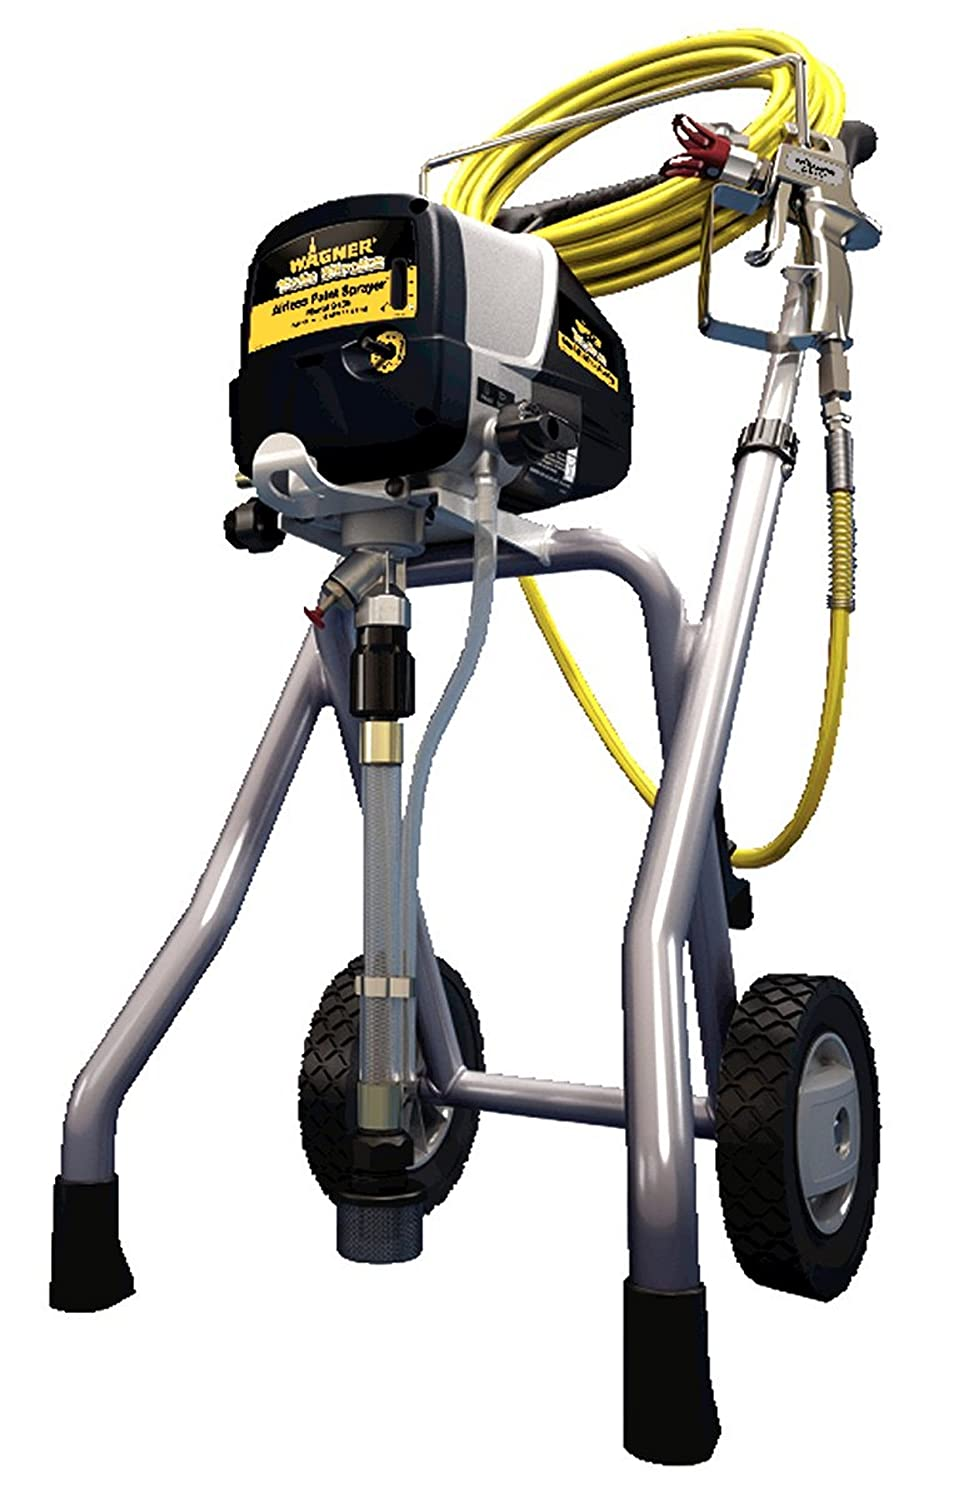 Wagner 9155 3000 PSI